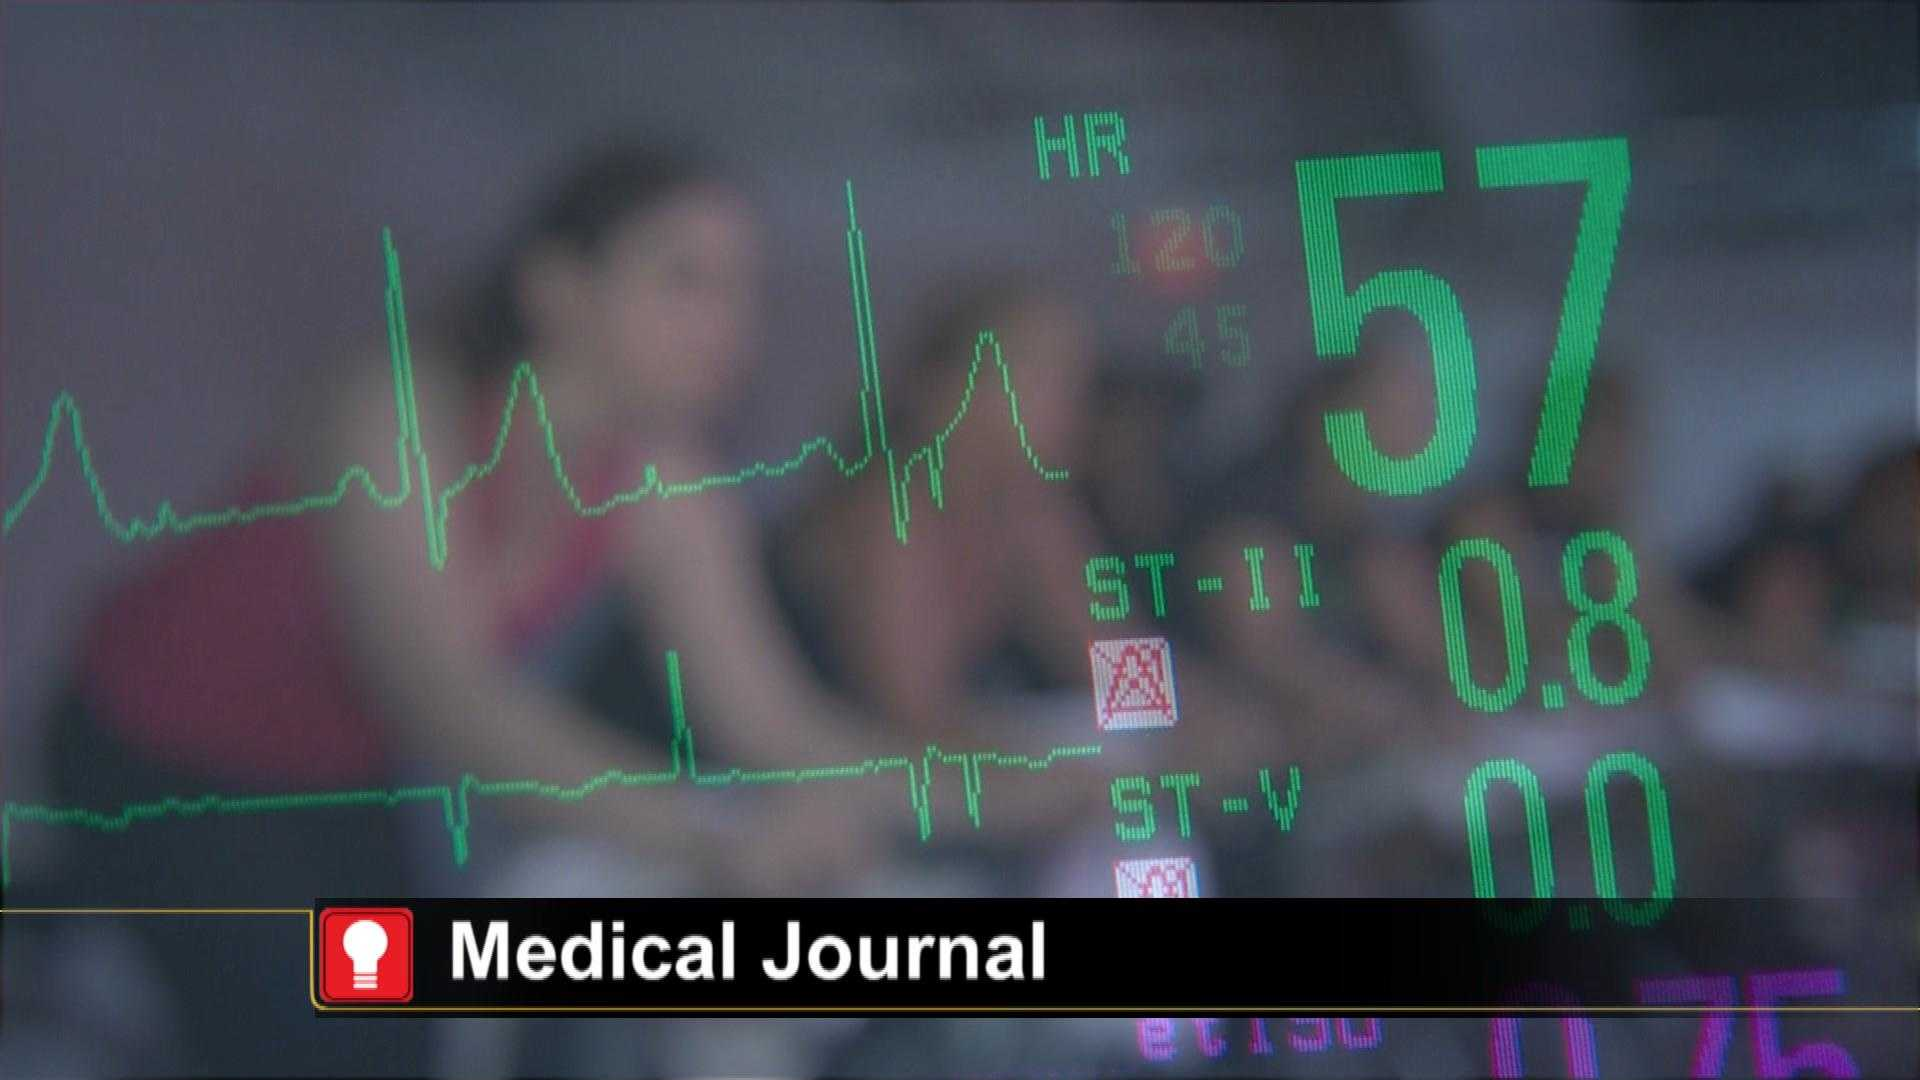 Image: Medical Journal